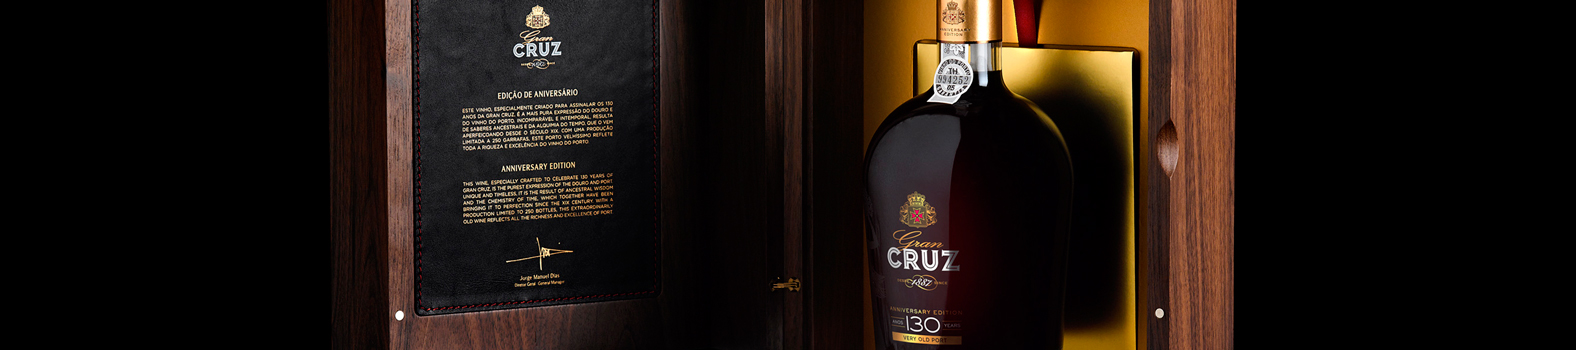 Omdesign dressed the 130 years of the Gran Cruz